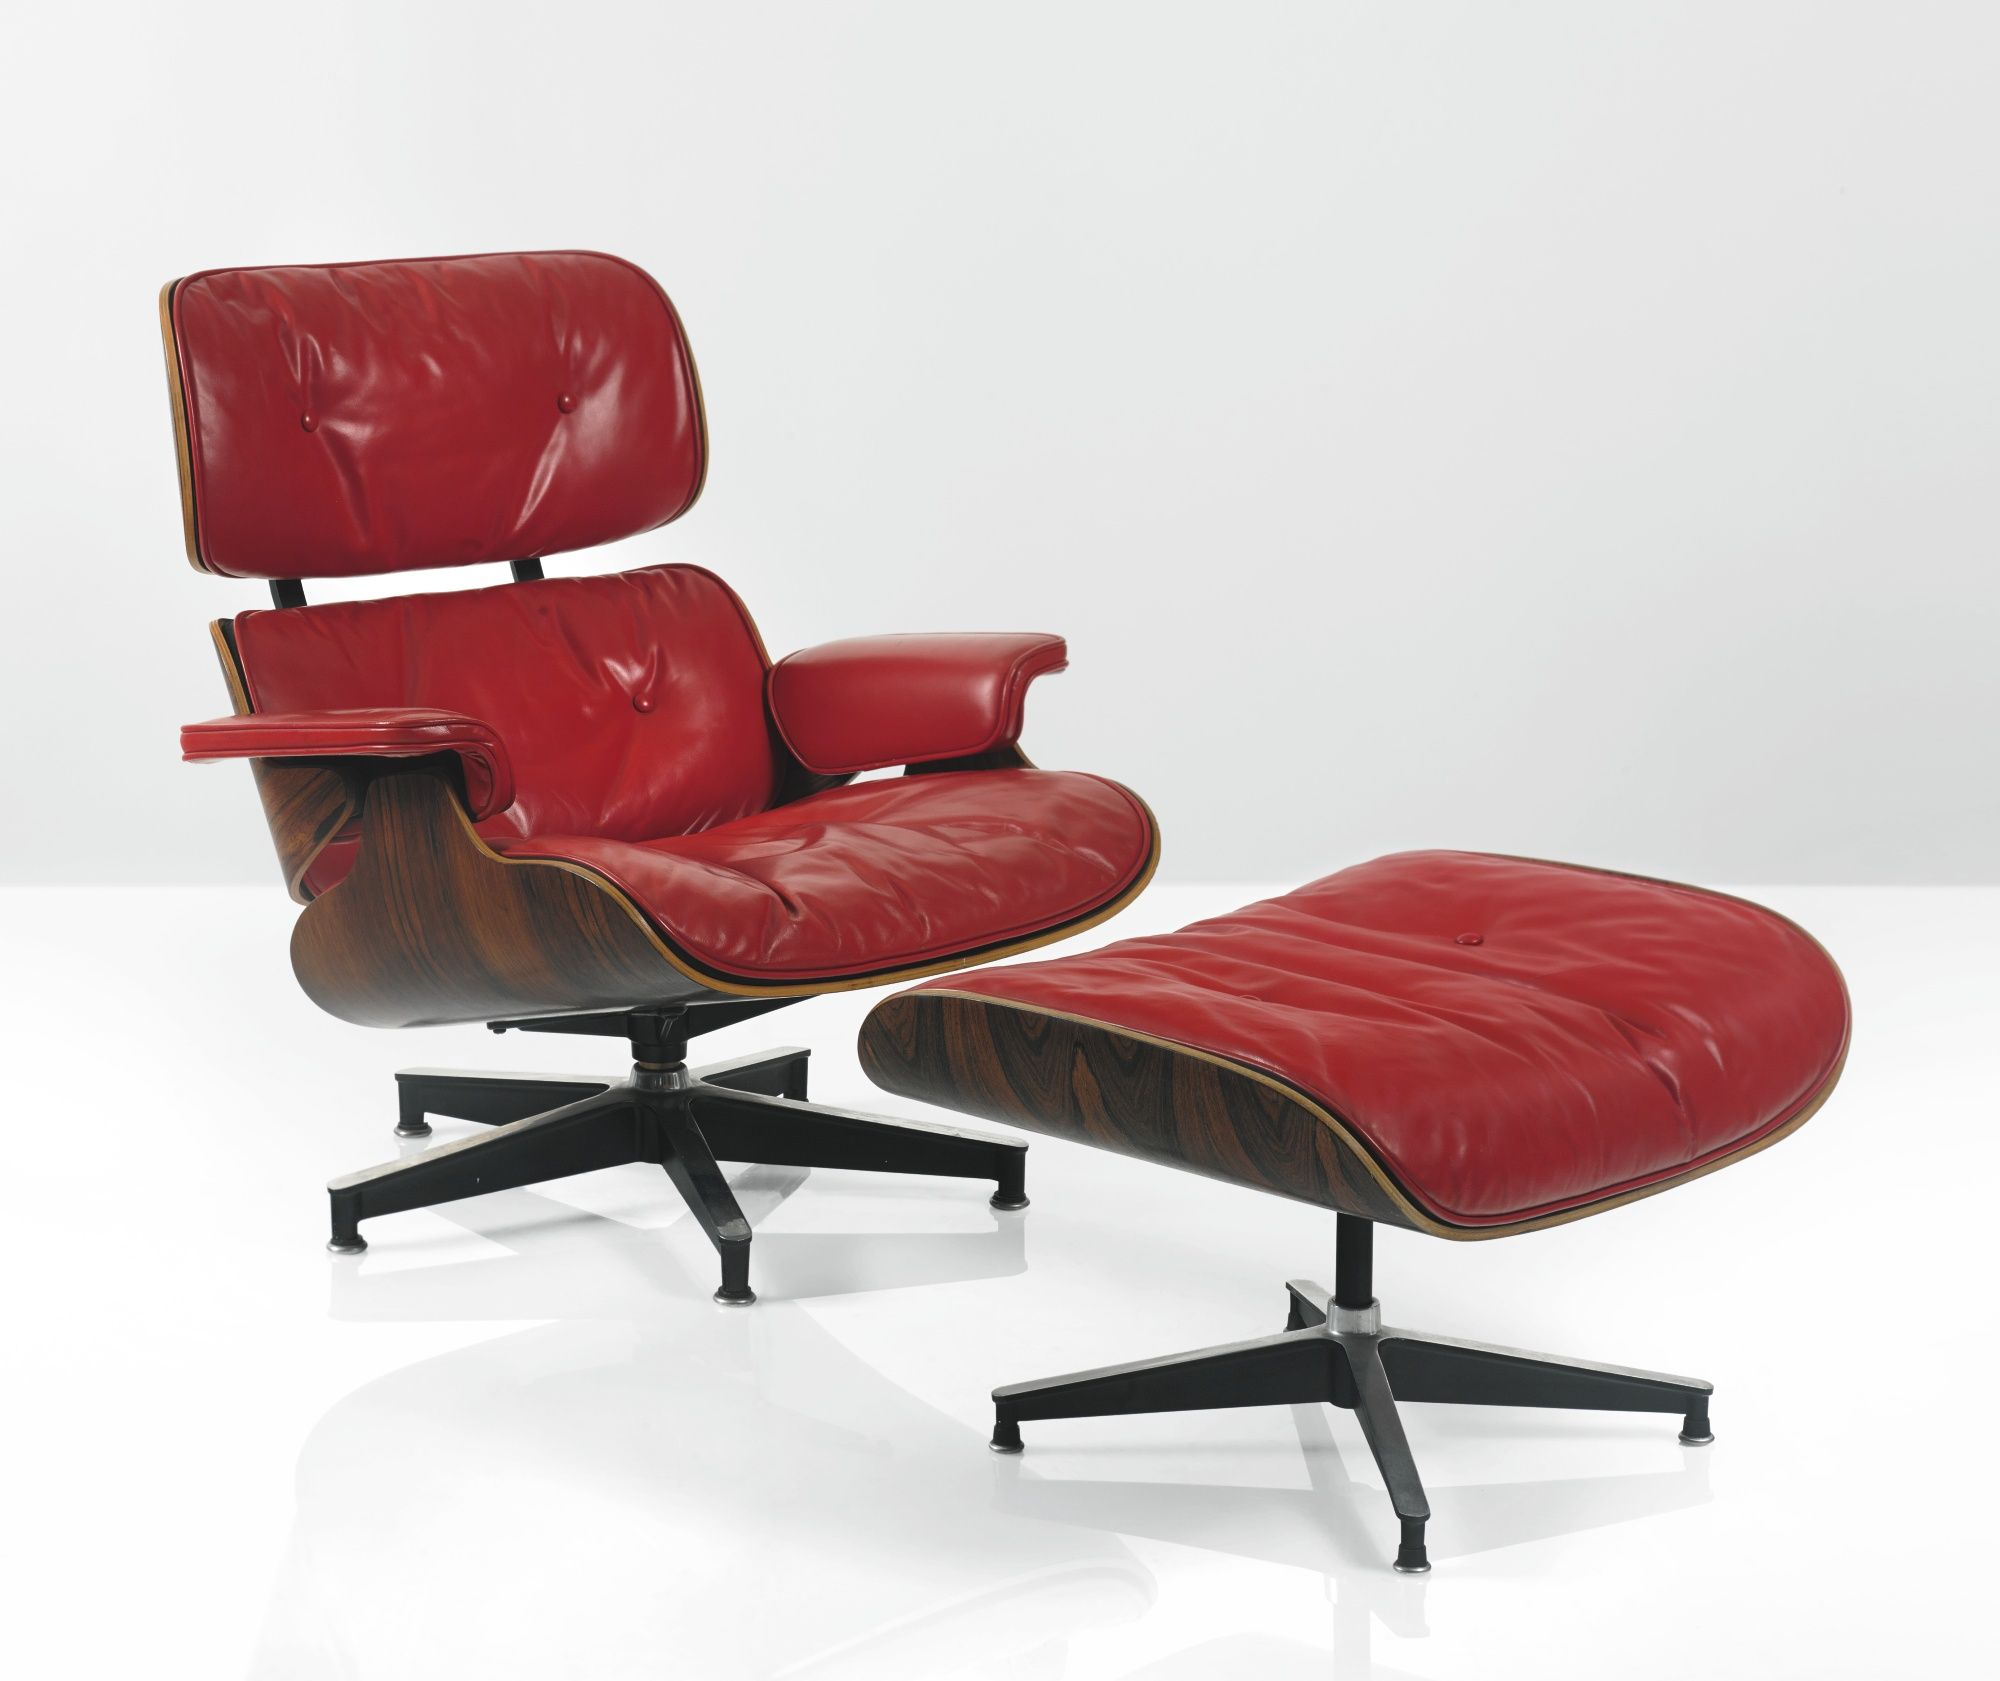 Red Lounge Chair Charles and Ray Eames 1956 Model No 670 and